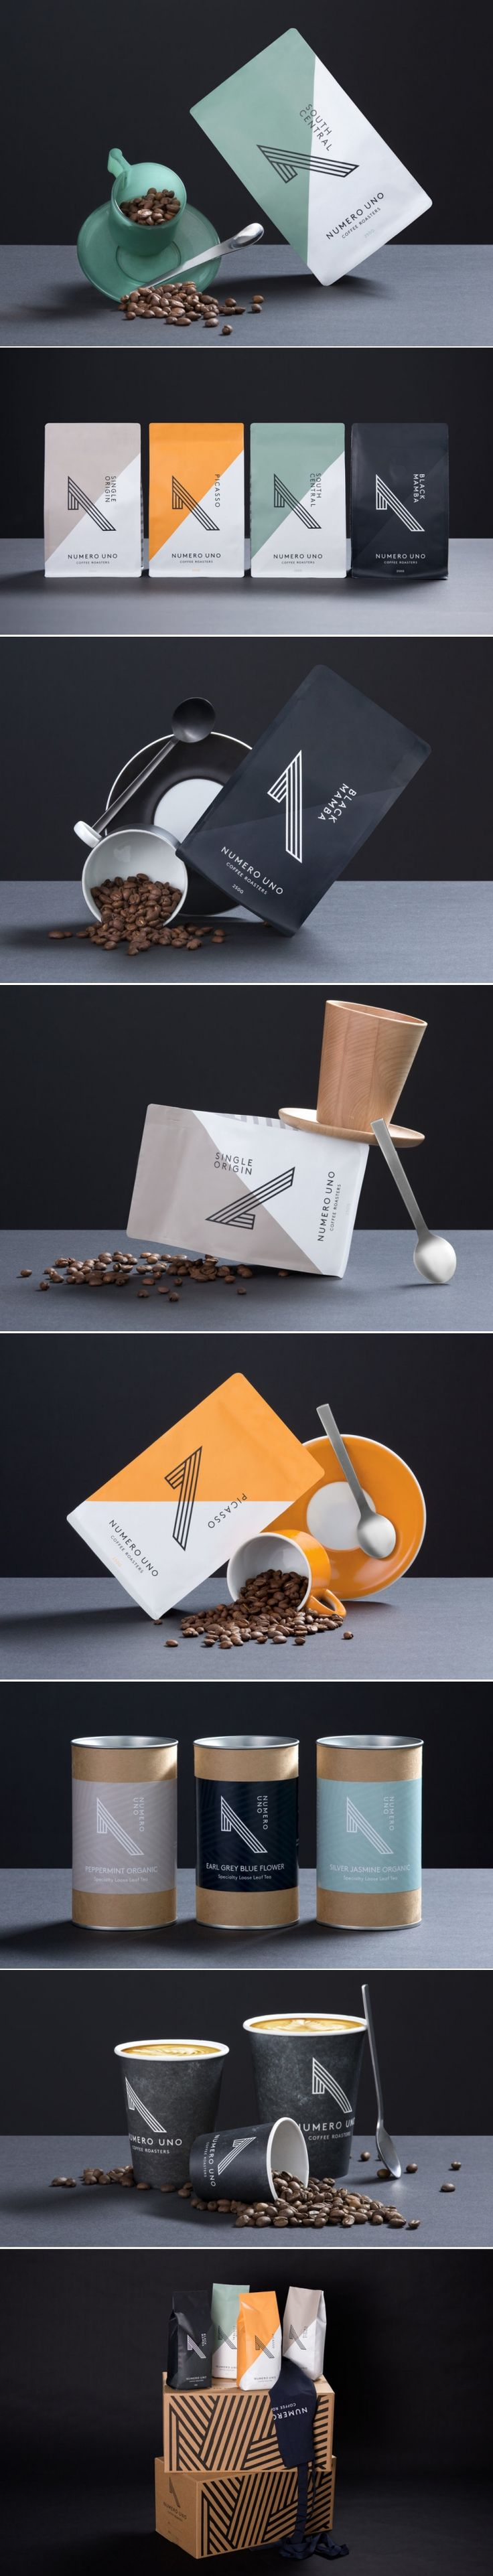 Numero Uno is a Striking Coffee Brand — The Dieline | Packaging & Branding Design & Innovation News